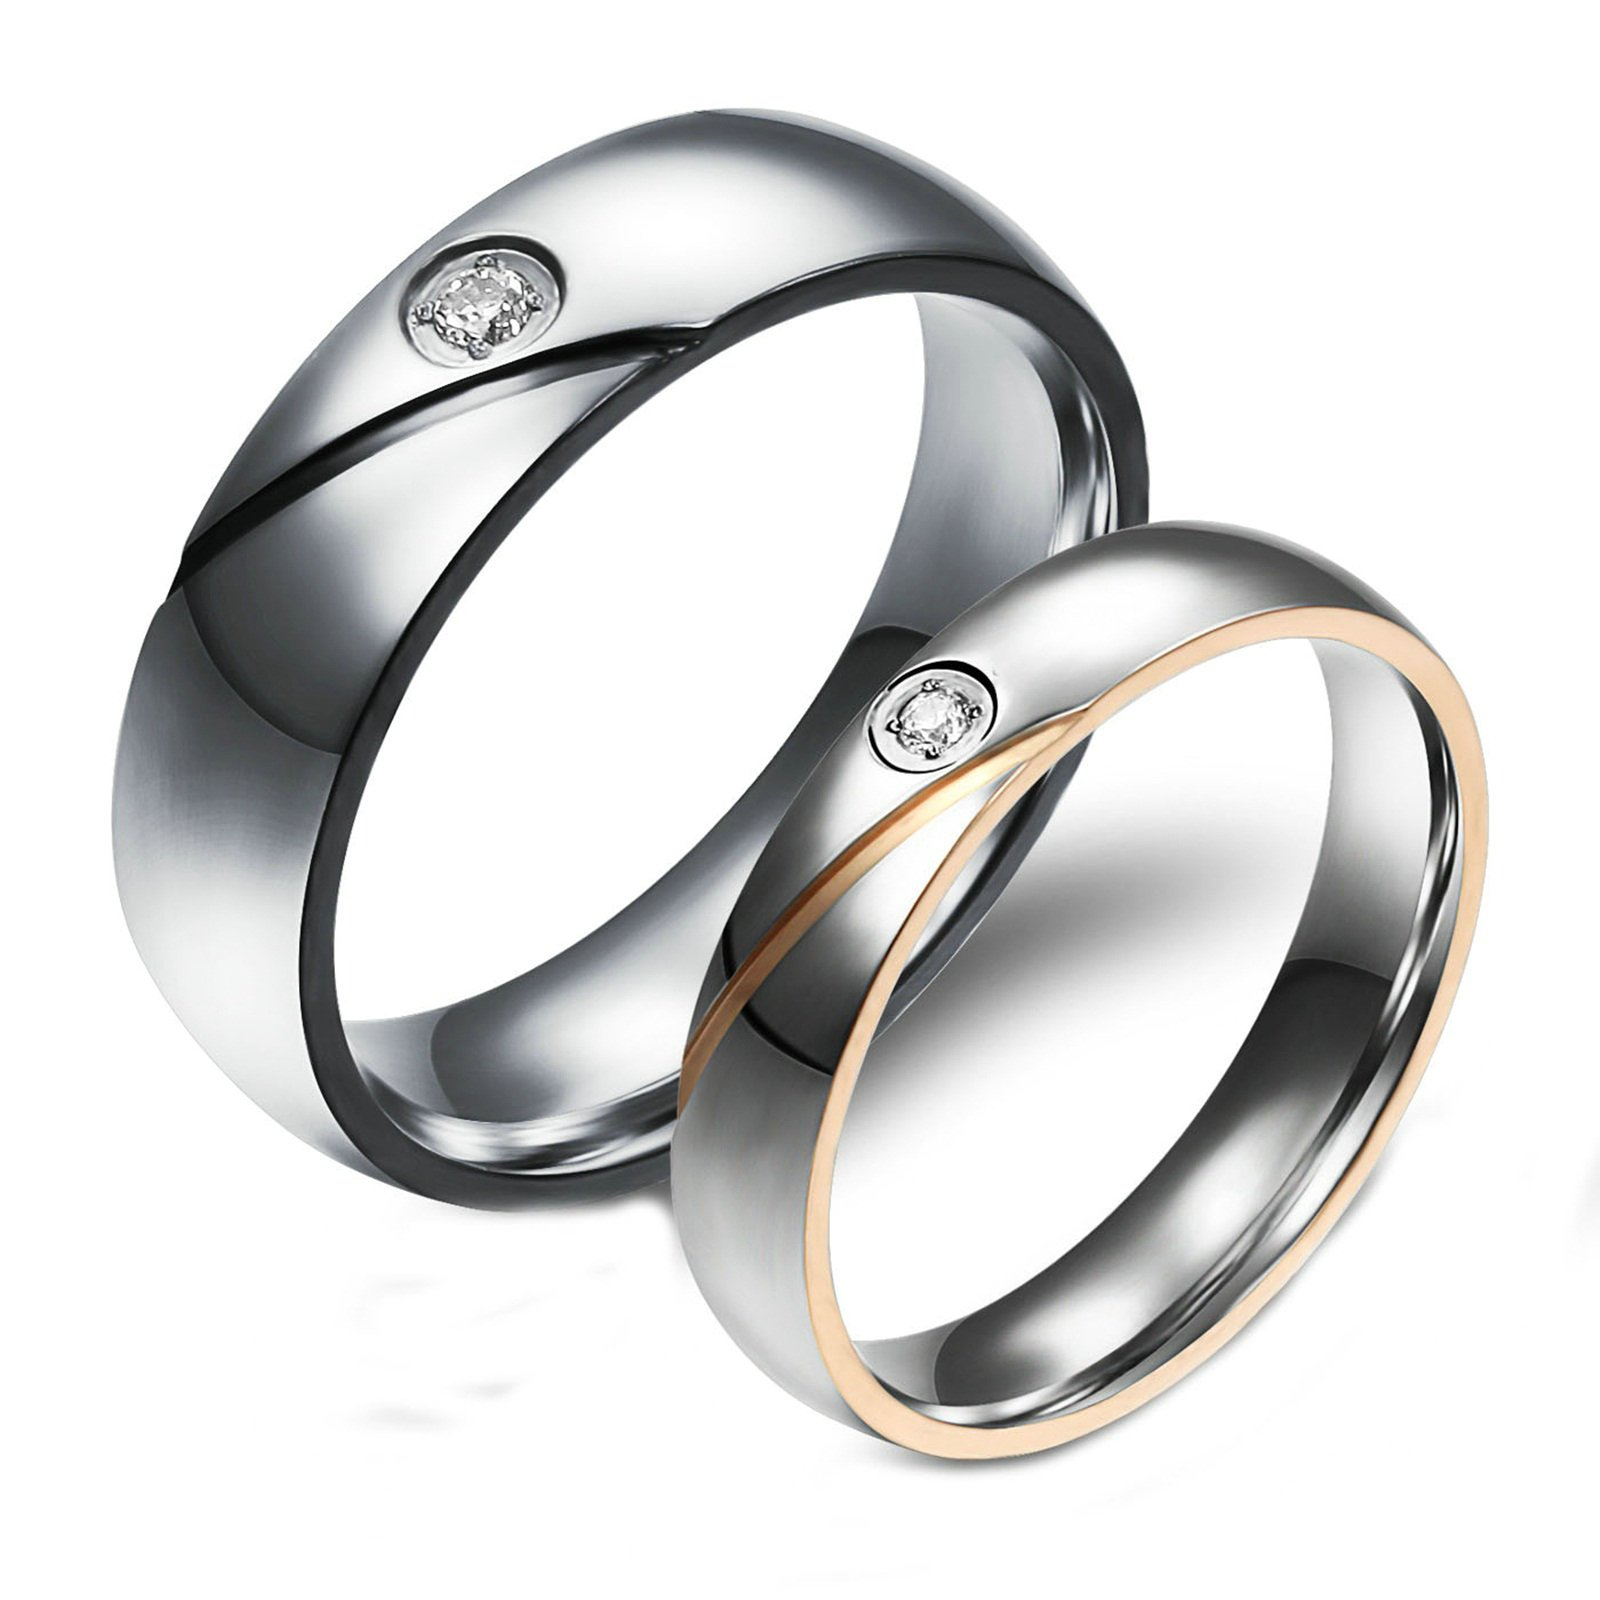 Aooaz 2 Pcs Rings Wedding Bands Engagement Rings Friendship Rings Black Gold Cubic Zirconia Rings With Free Engraving Womens 5 & Men 10 Novelty Jewelry Gift